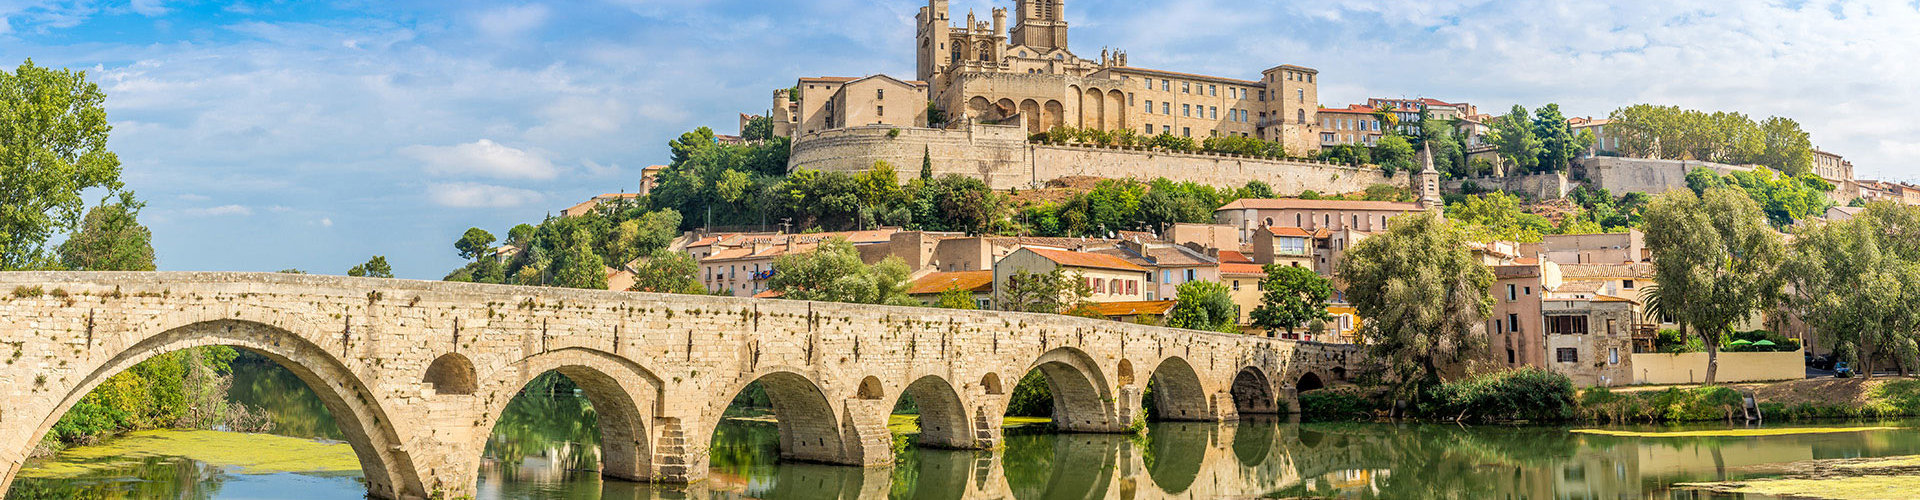 Beziers on the Midi